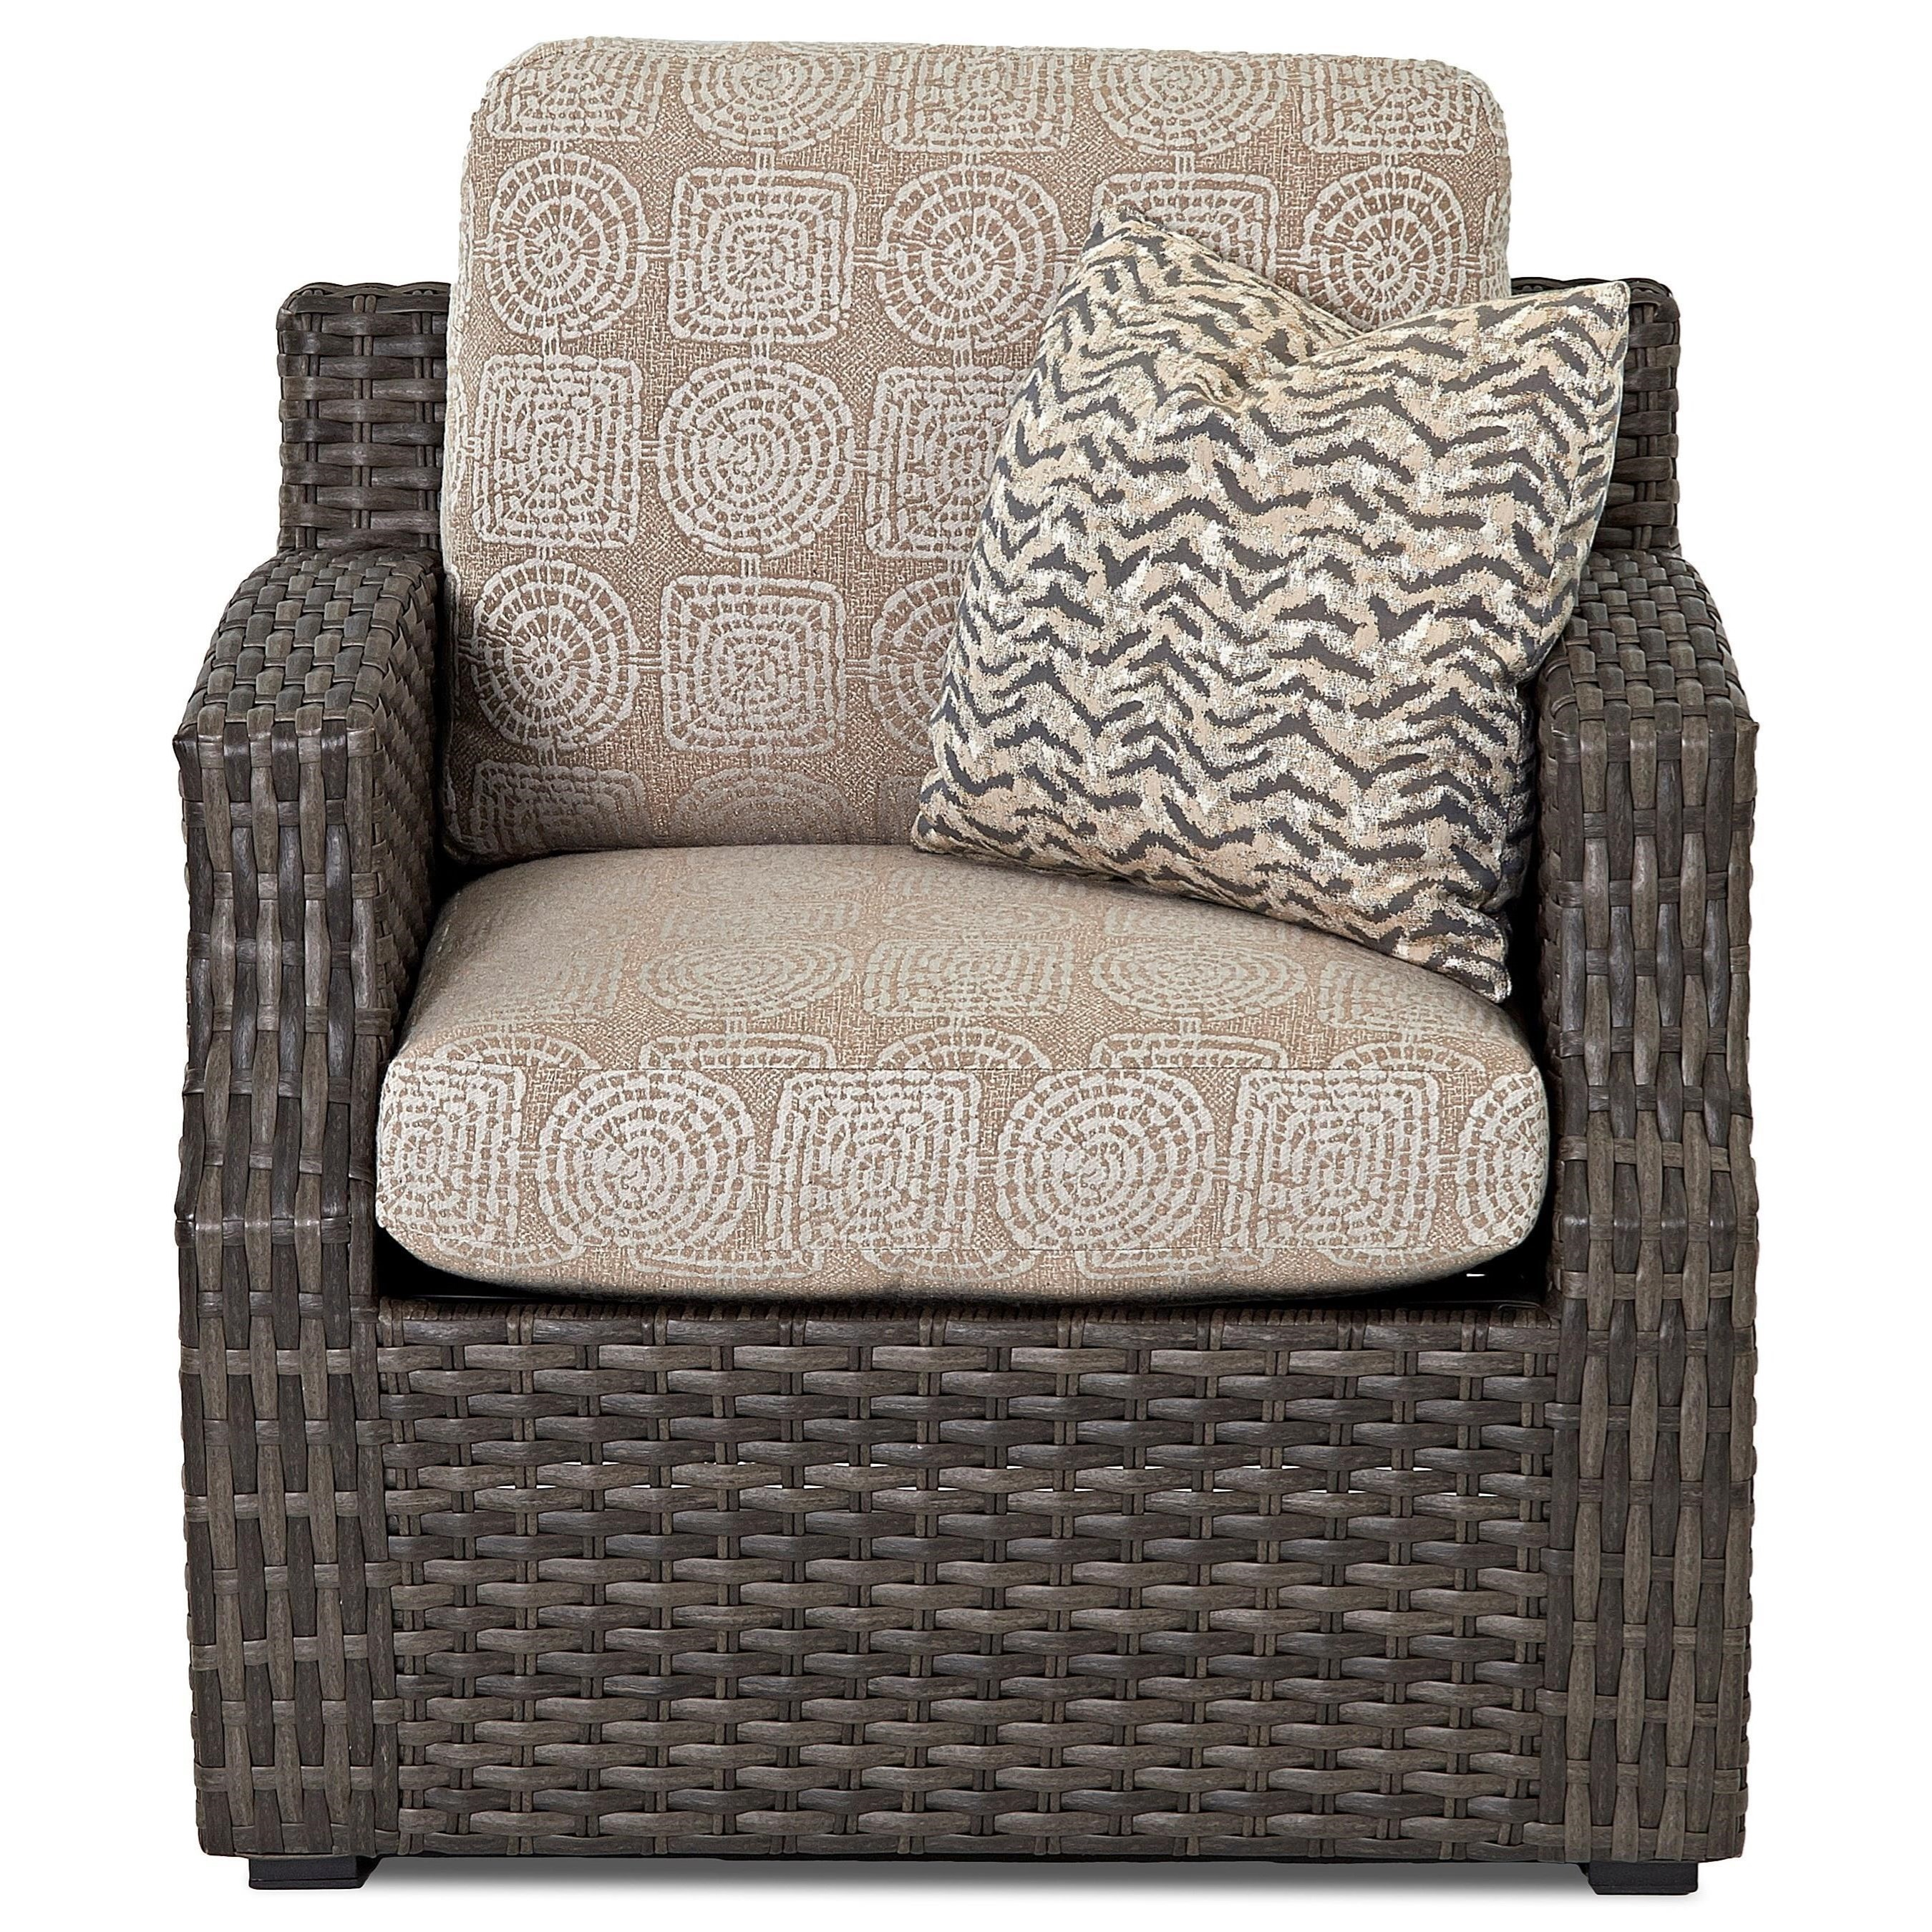 Cascade Chair w/ Drainable Cushion by Klaussner Outdoor at Nassau Furniture and Mattress